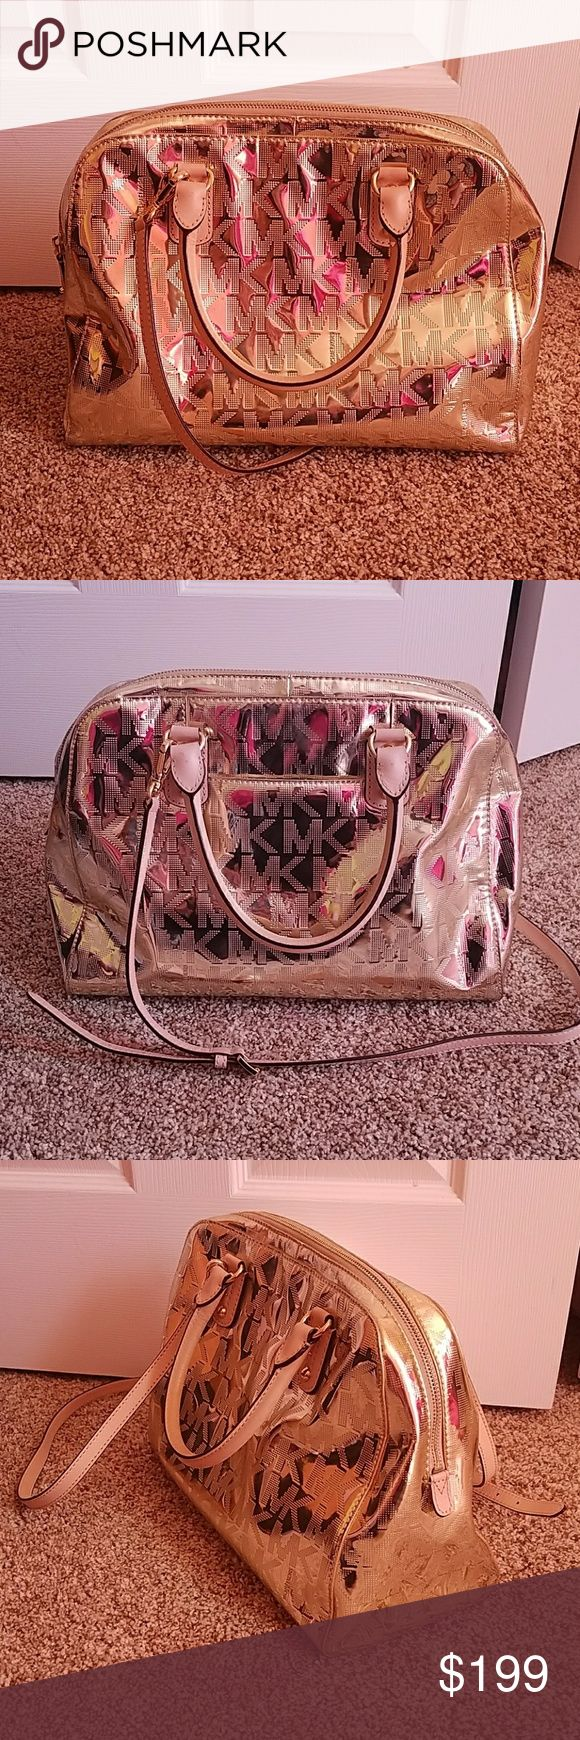 LARGE Michael Kors Metallic Gold tote Hard to find style and size! Gorgeous gold satchel in perfect condition! Handles have nearly no signs of wear. Bag looks rose gold in pictures, but it is the original gold color.  Has one large zip pocket and four smaller pockets. Also has a pocket on the back of the bag to fit cell phone and etc. Comes with removable, adjustable shoulder strap.  *Would consider trading! Michael Kors Collection Bags Totes